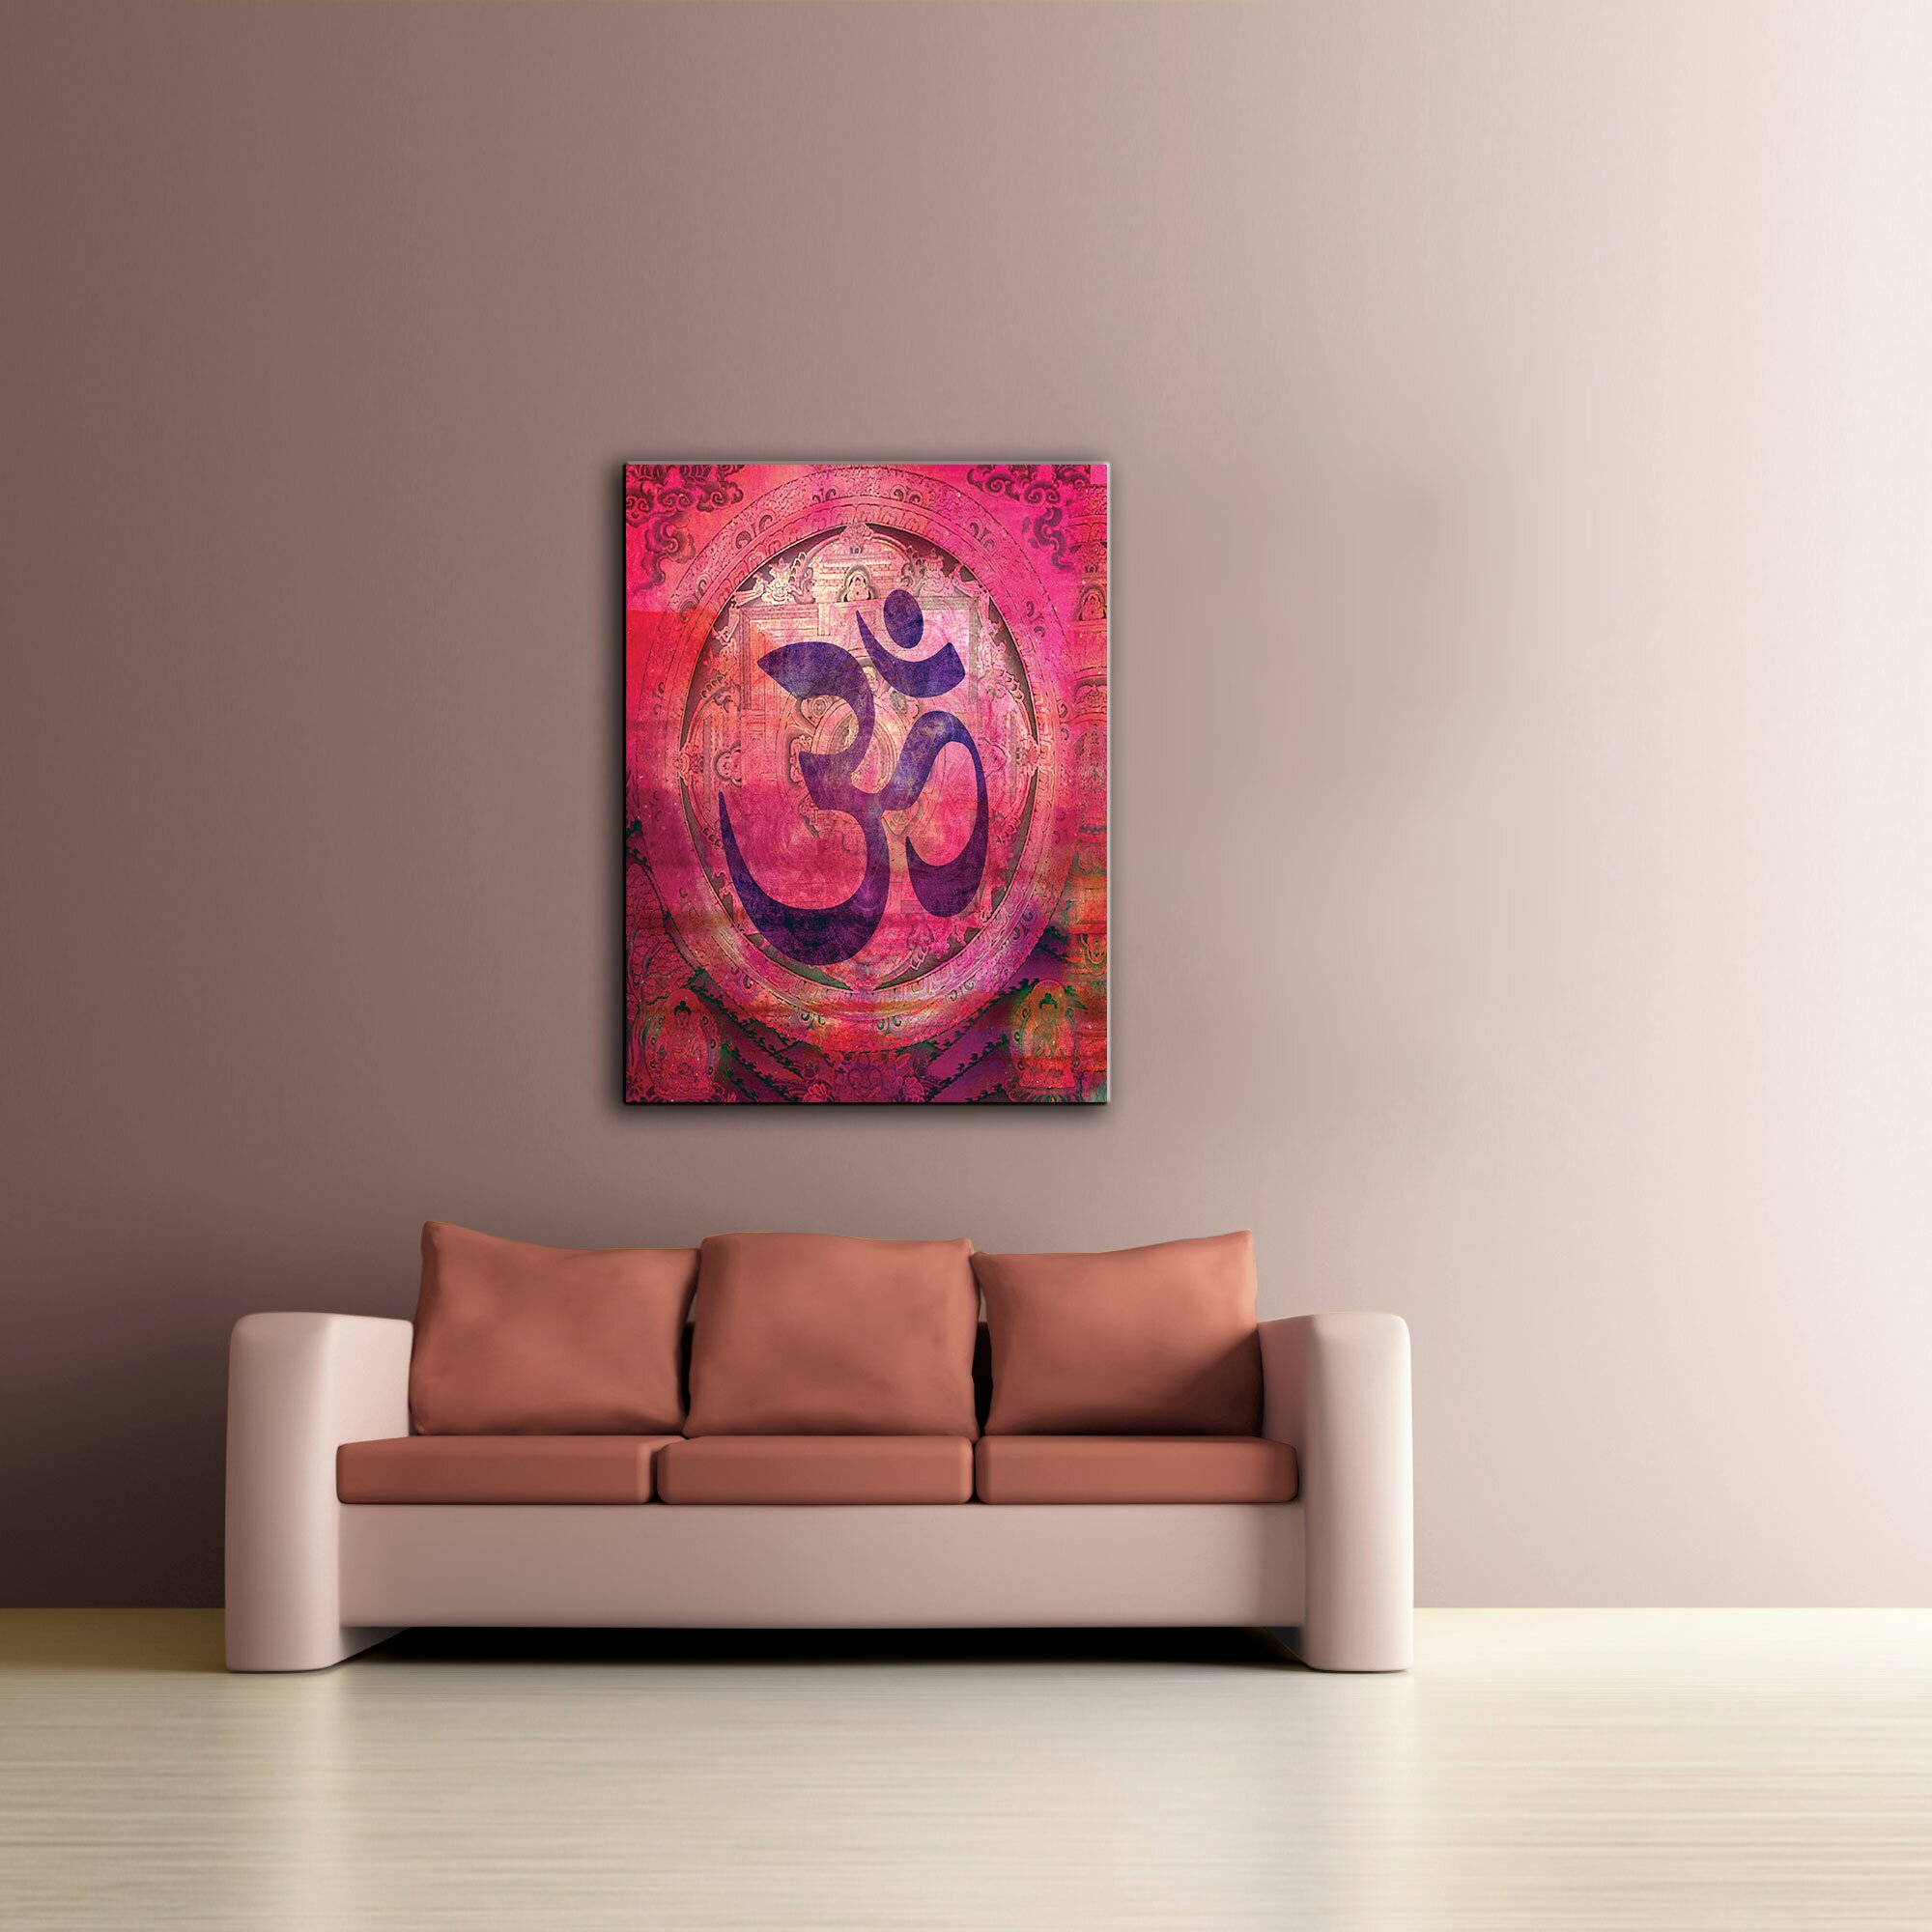 Wall Art Stickers Next Day Delivery : Artwall artapeelz om mandala by elena ray graphic art